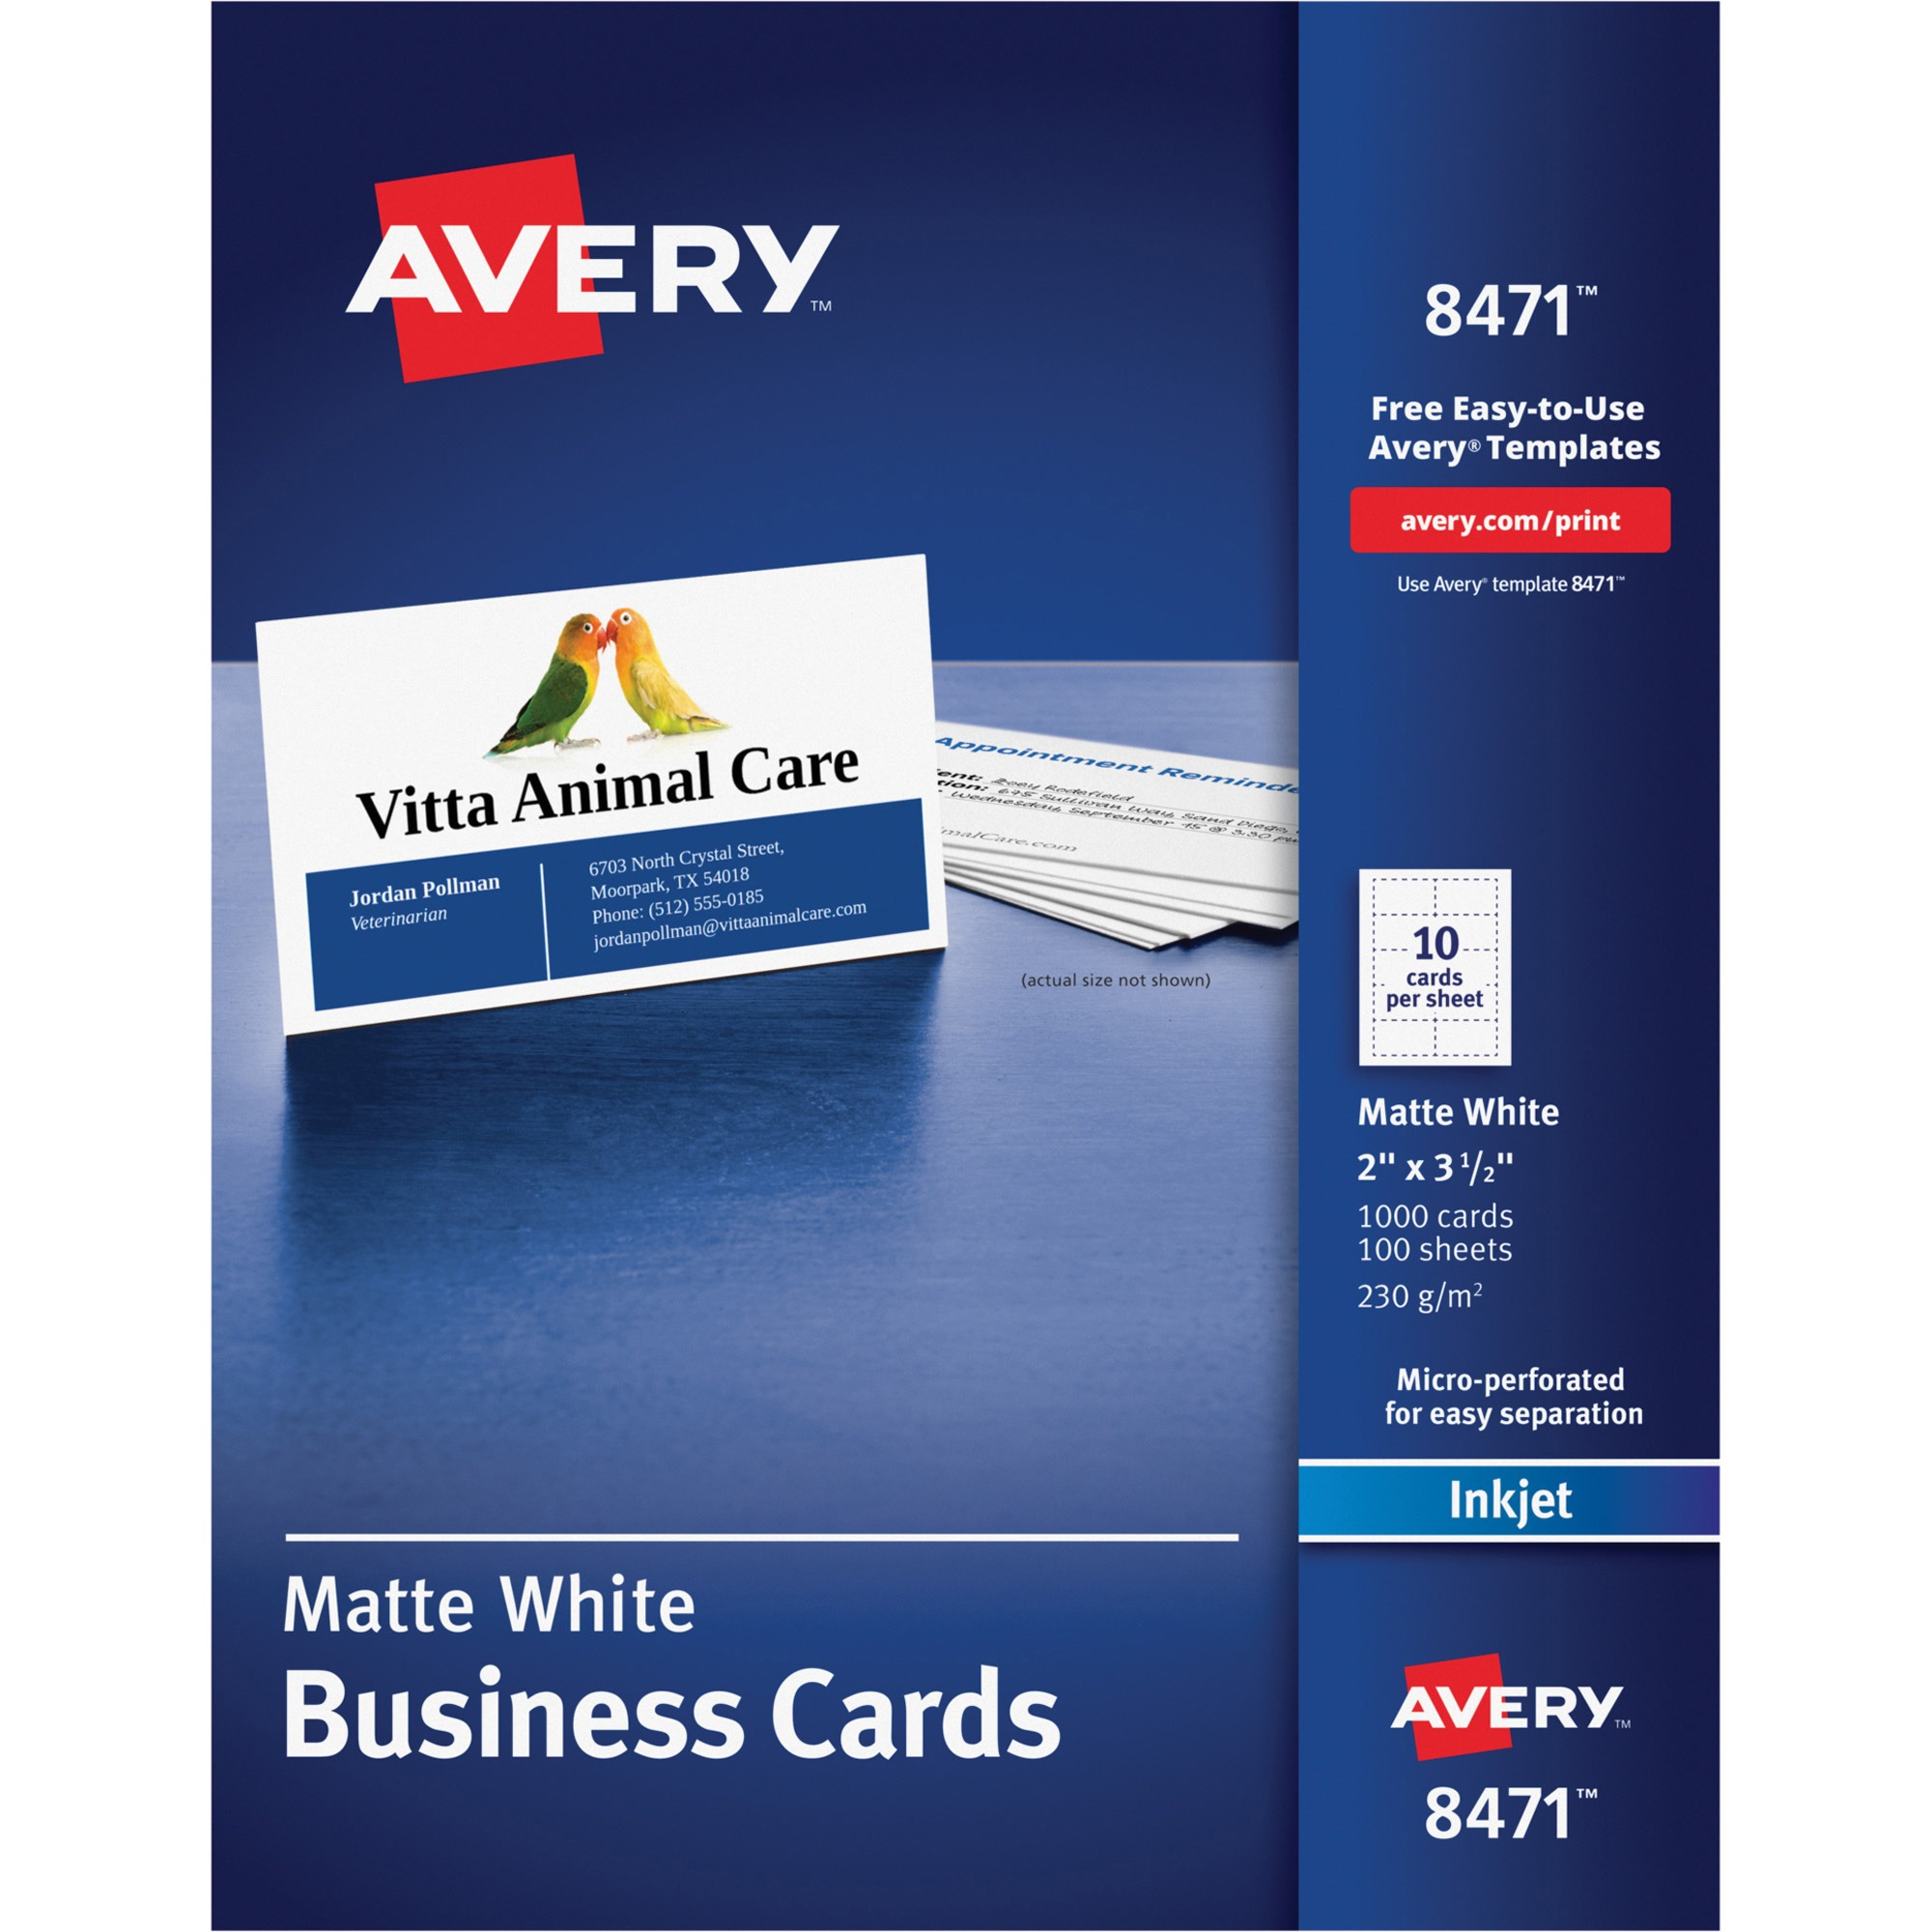 "Avery Business Cards, Matte White, 2"" x 3-1/2"", 1000 Count"